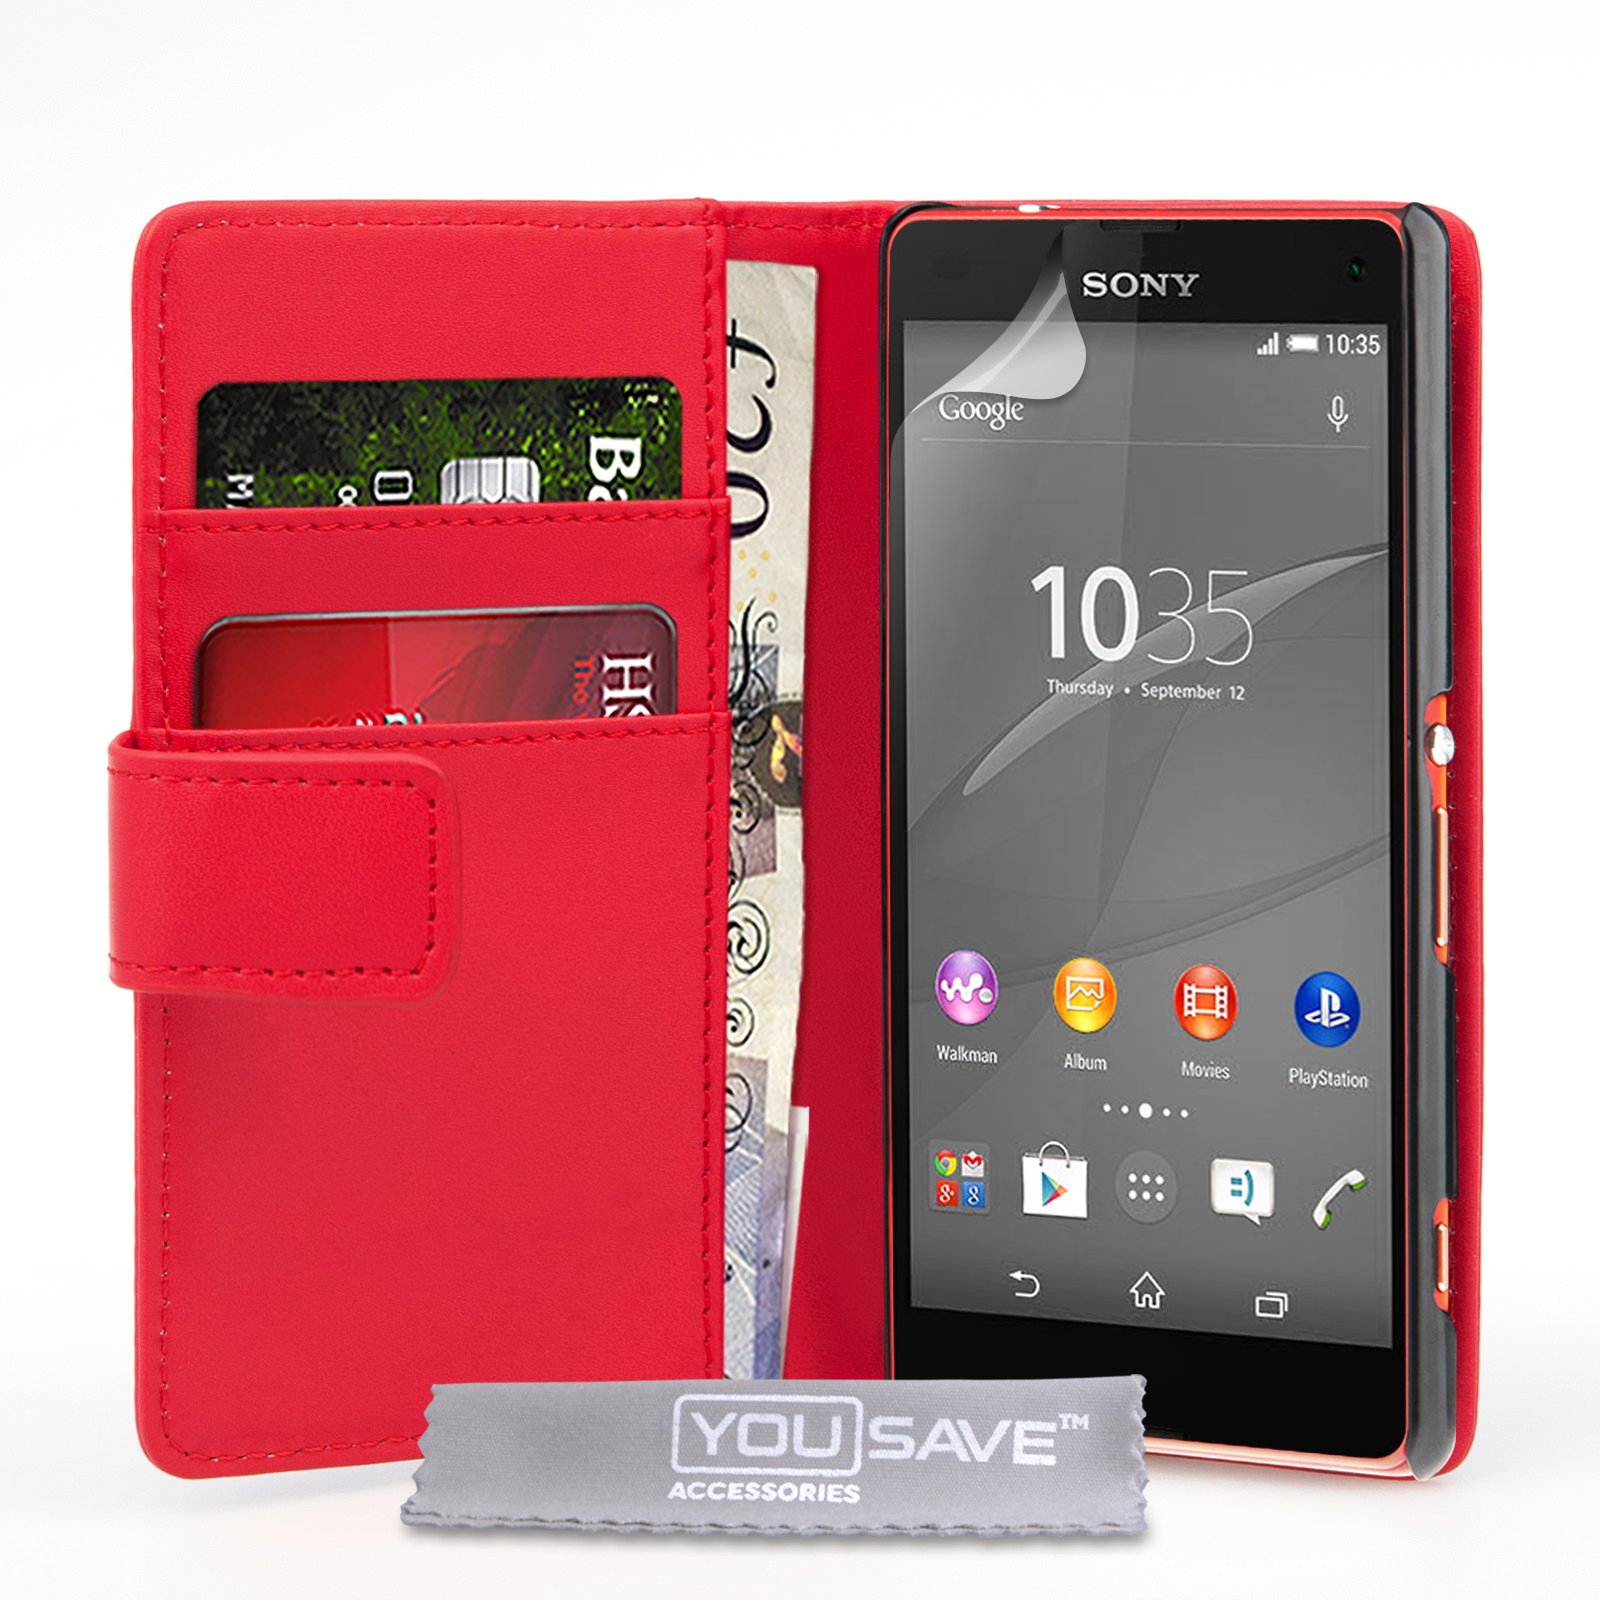 YouSave Sony Xperia Z4 Compact Leather-Effect Wallet Case - Red